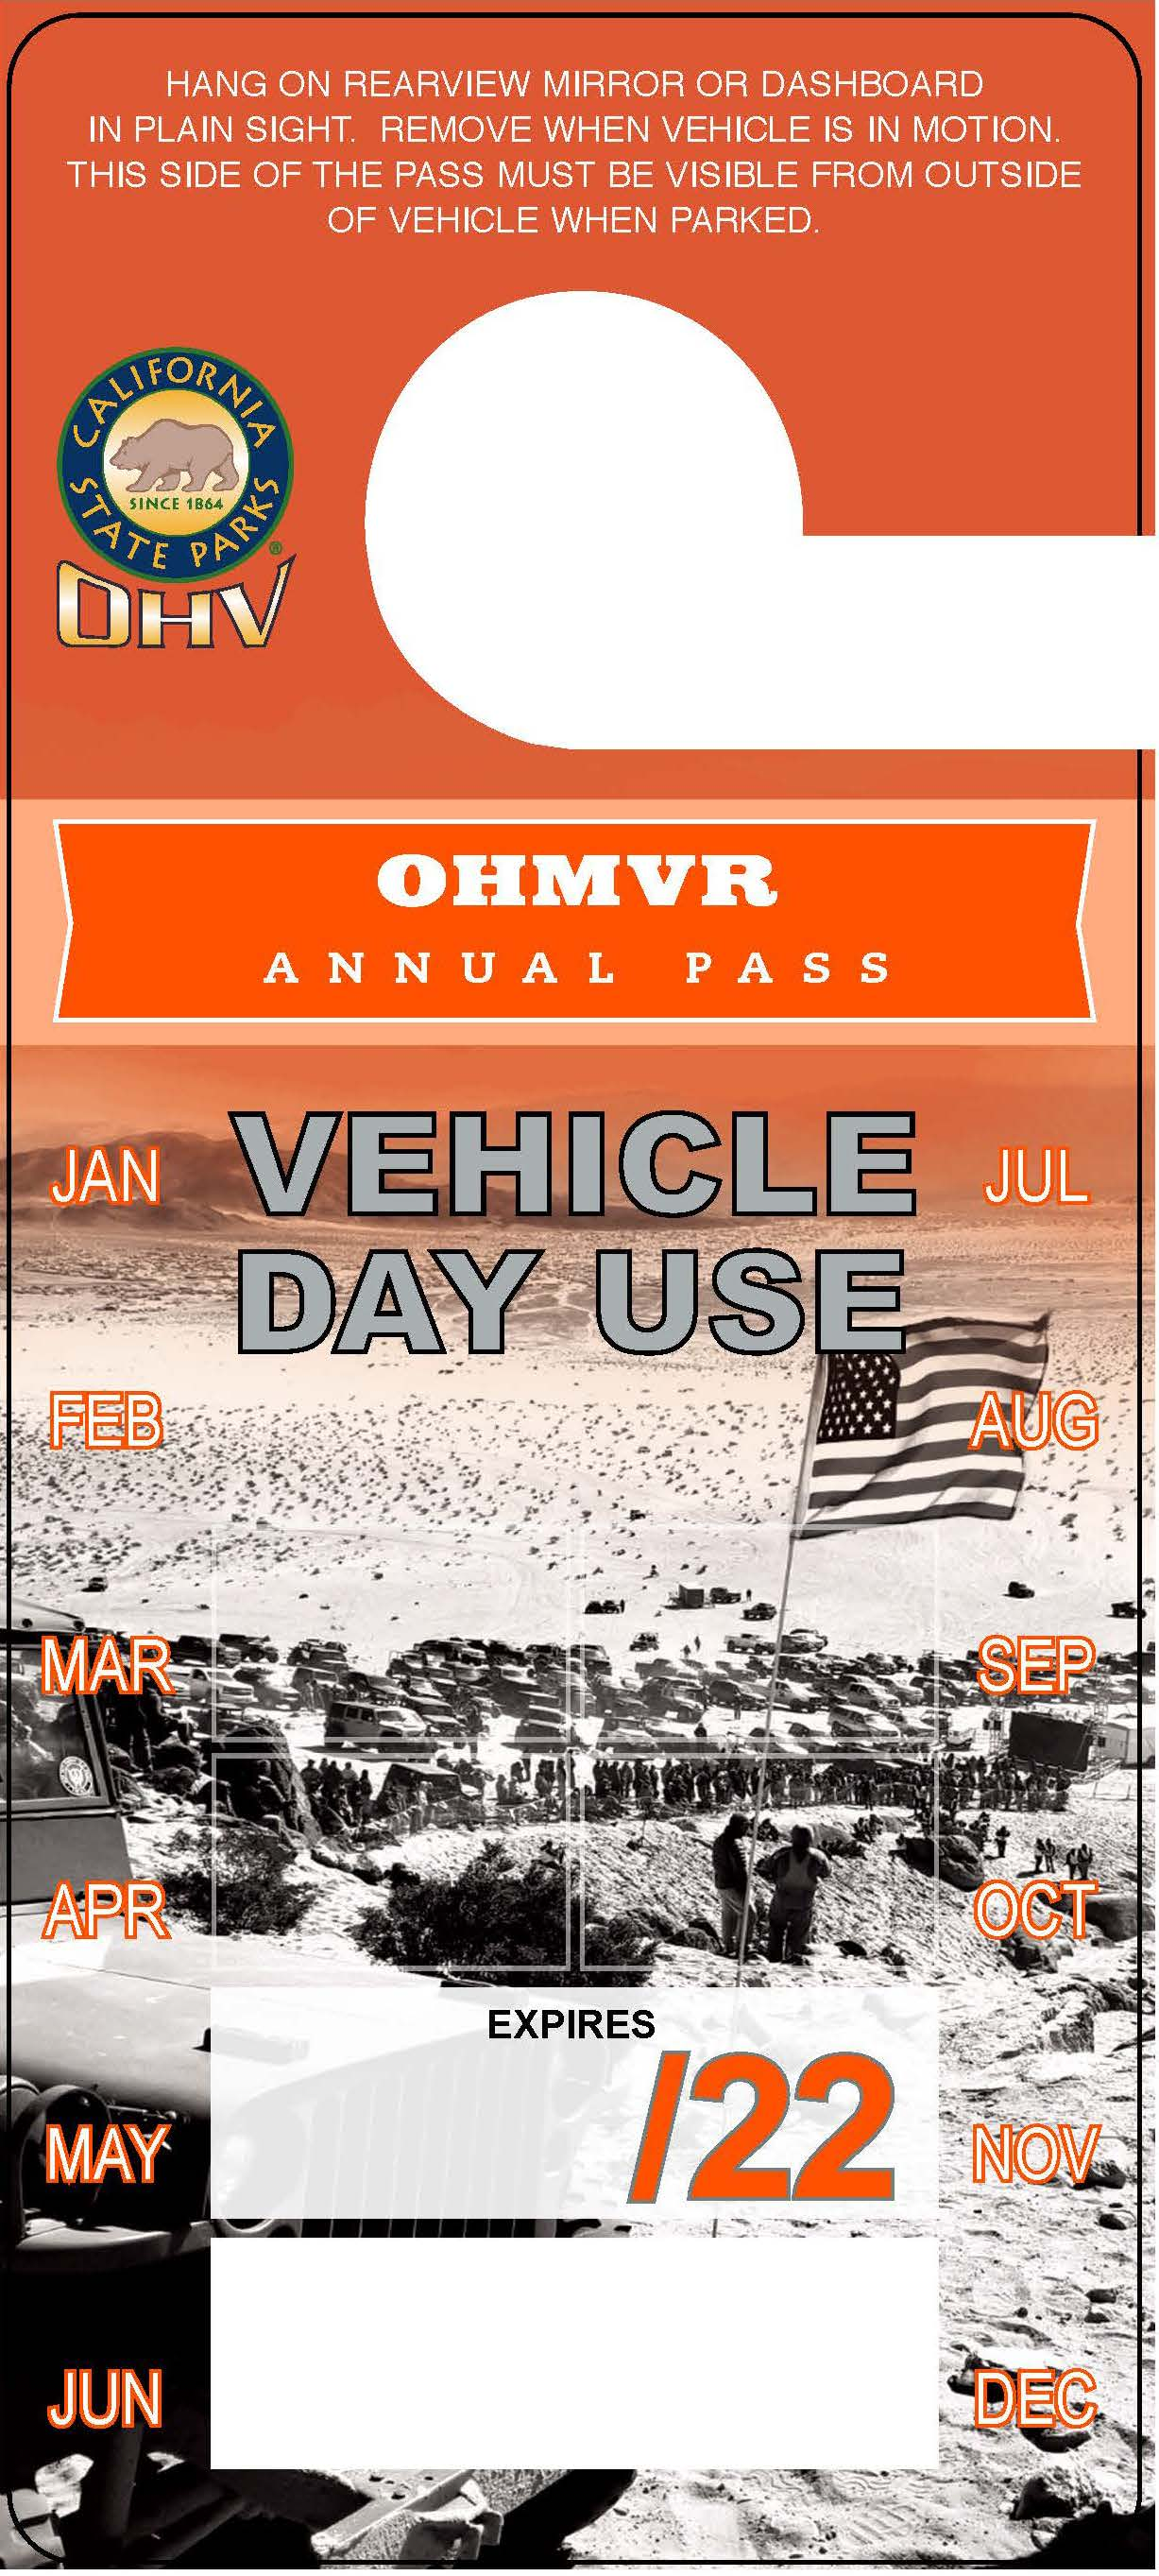 OHV Annual Pass Hangtag Image